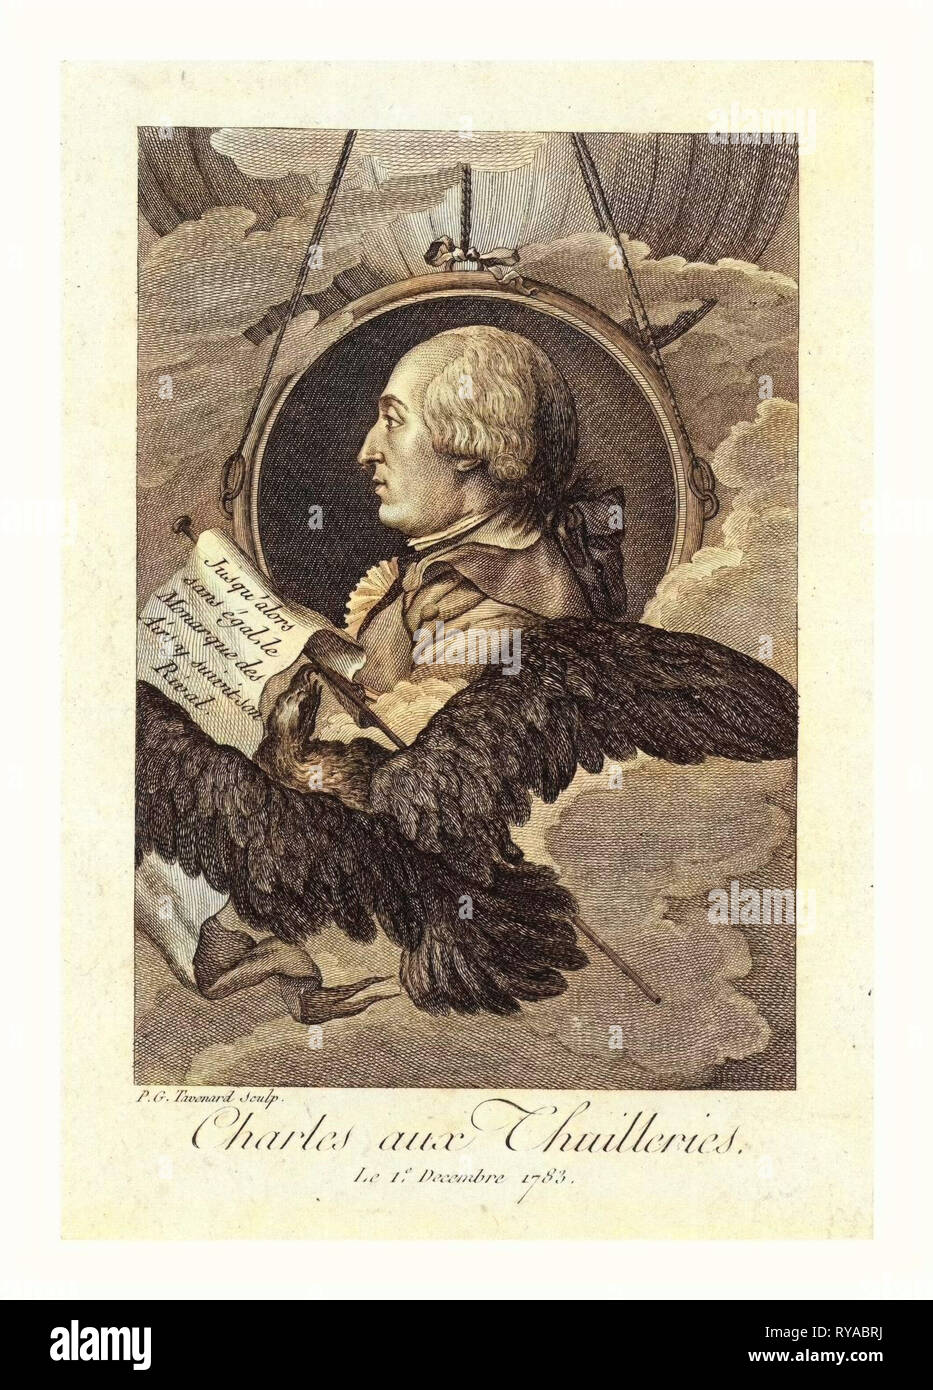 Head-and-Shoulders Profile Portrait of French Balloonist J.A.C. Charles, Who Made the First Flight in a Hydrogen Balloon, Dec. 1, 1783. Includes Banner with Caption 'Jusq'Alors San Égal, Le Monarque Des Airs, Y Suivit Son Rival' and Large Bird in Foreground, with Balloon in Background - Stock Image